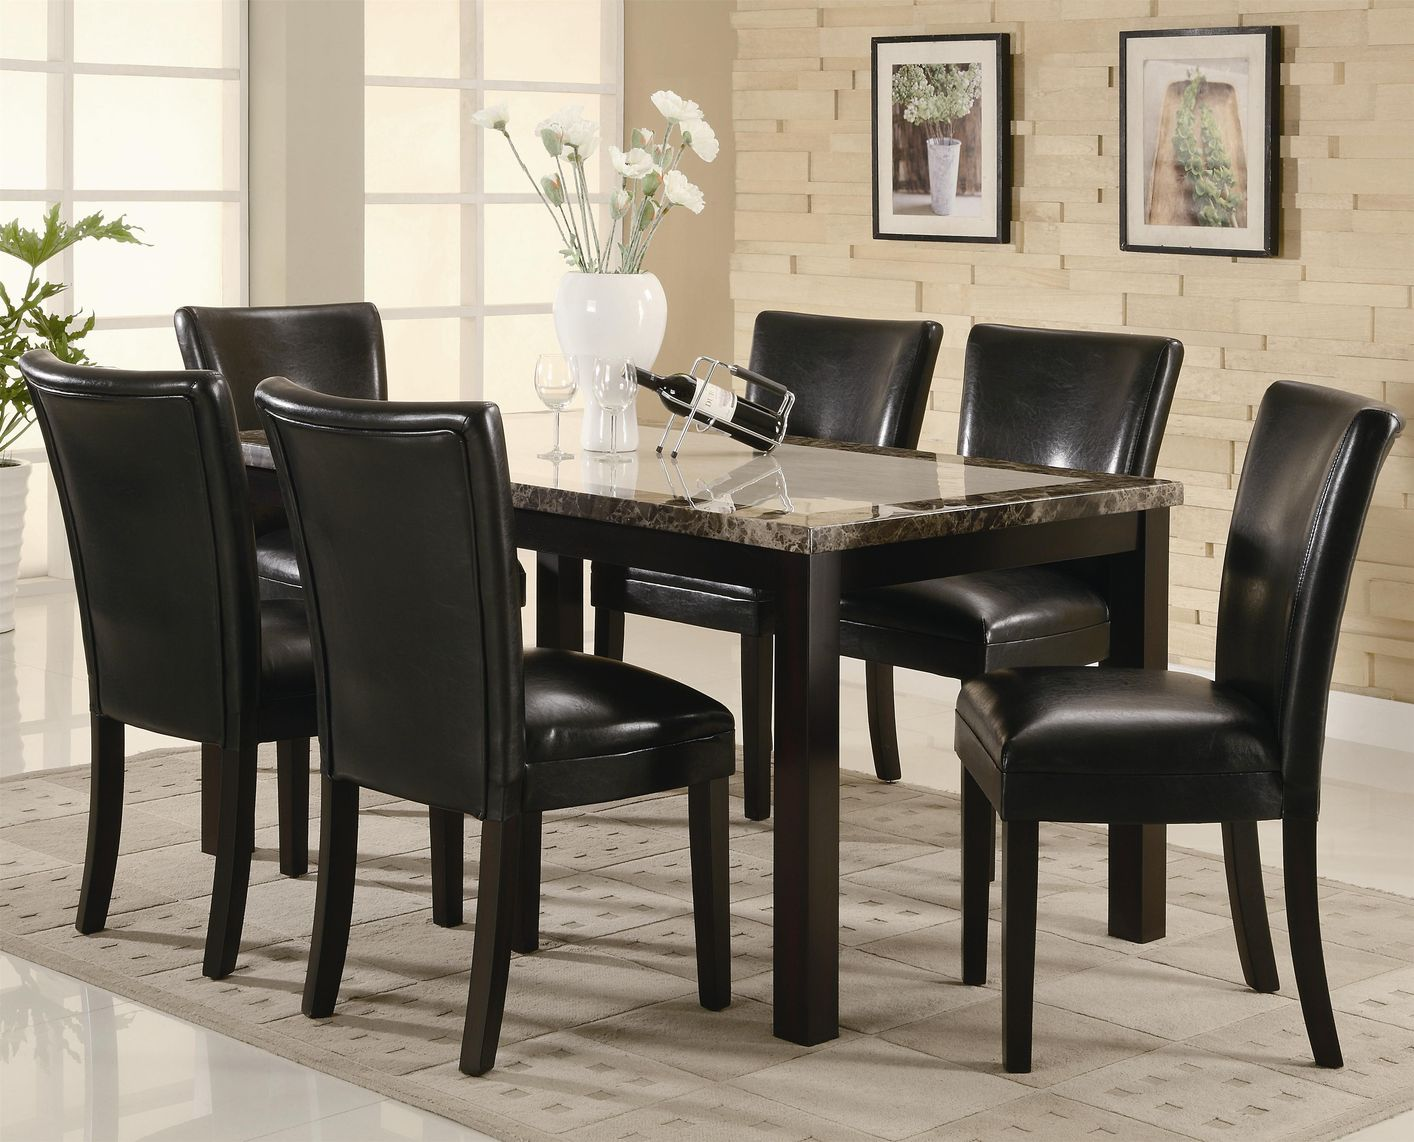 Dining room tables and chairs uk